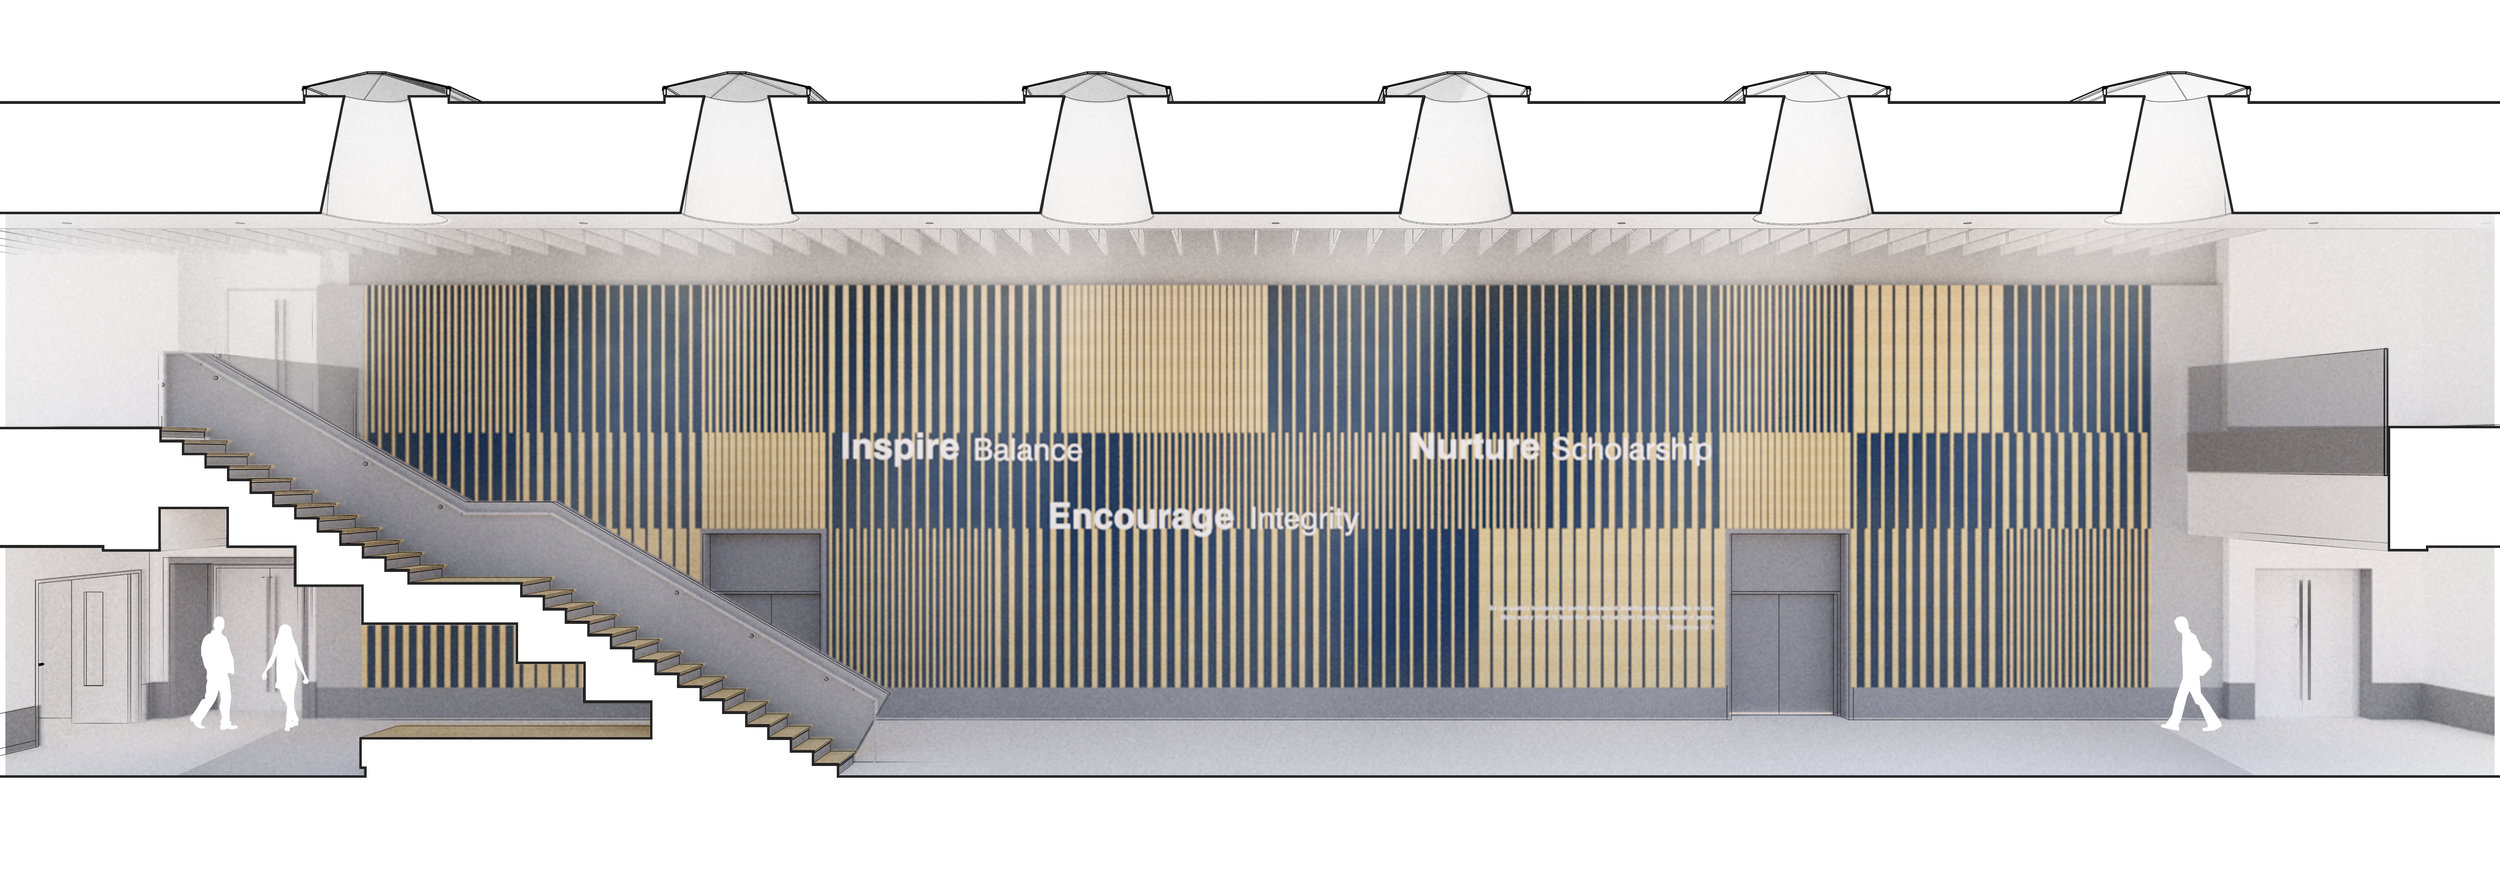 Inspiration Wall and Stair Rendering